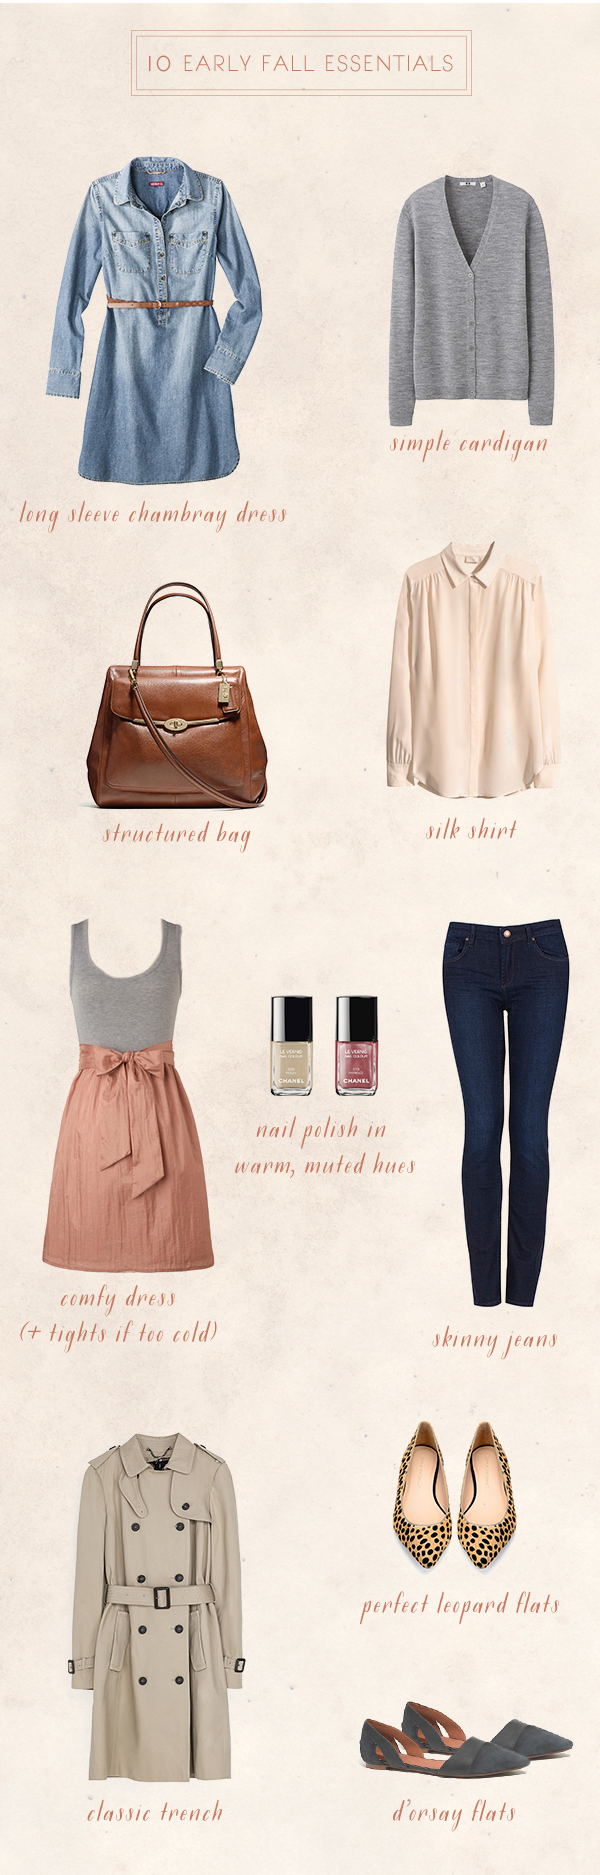 10 Early Fall Essentials